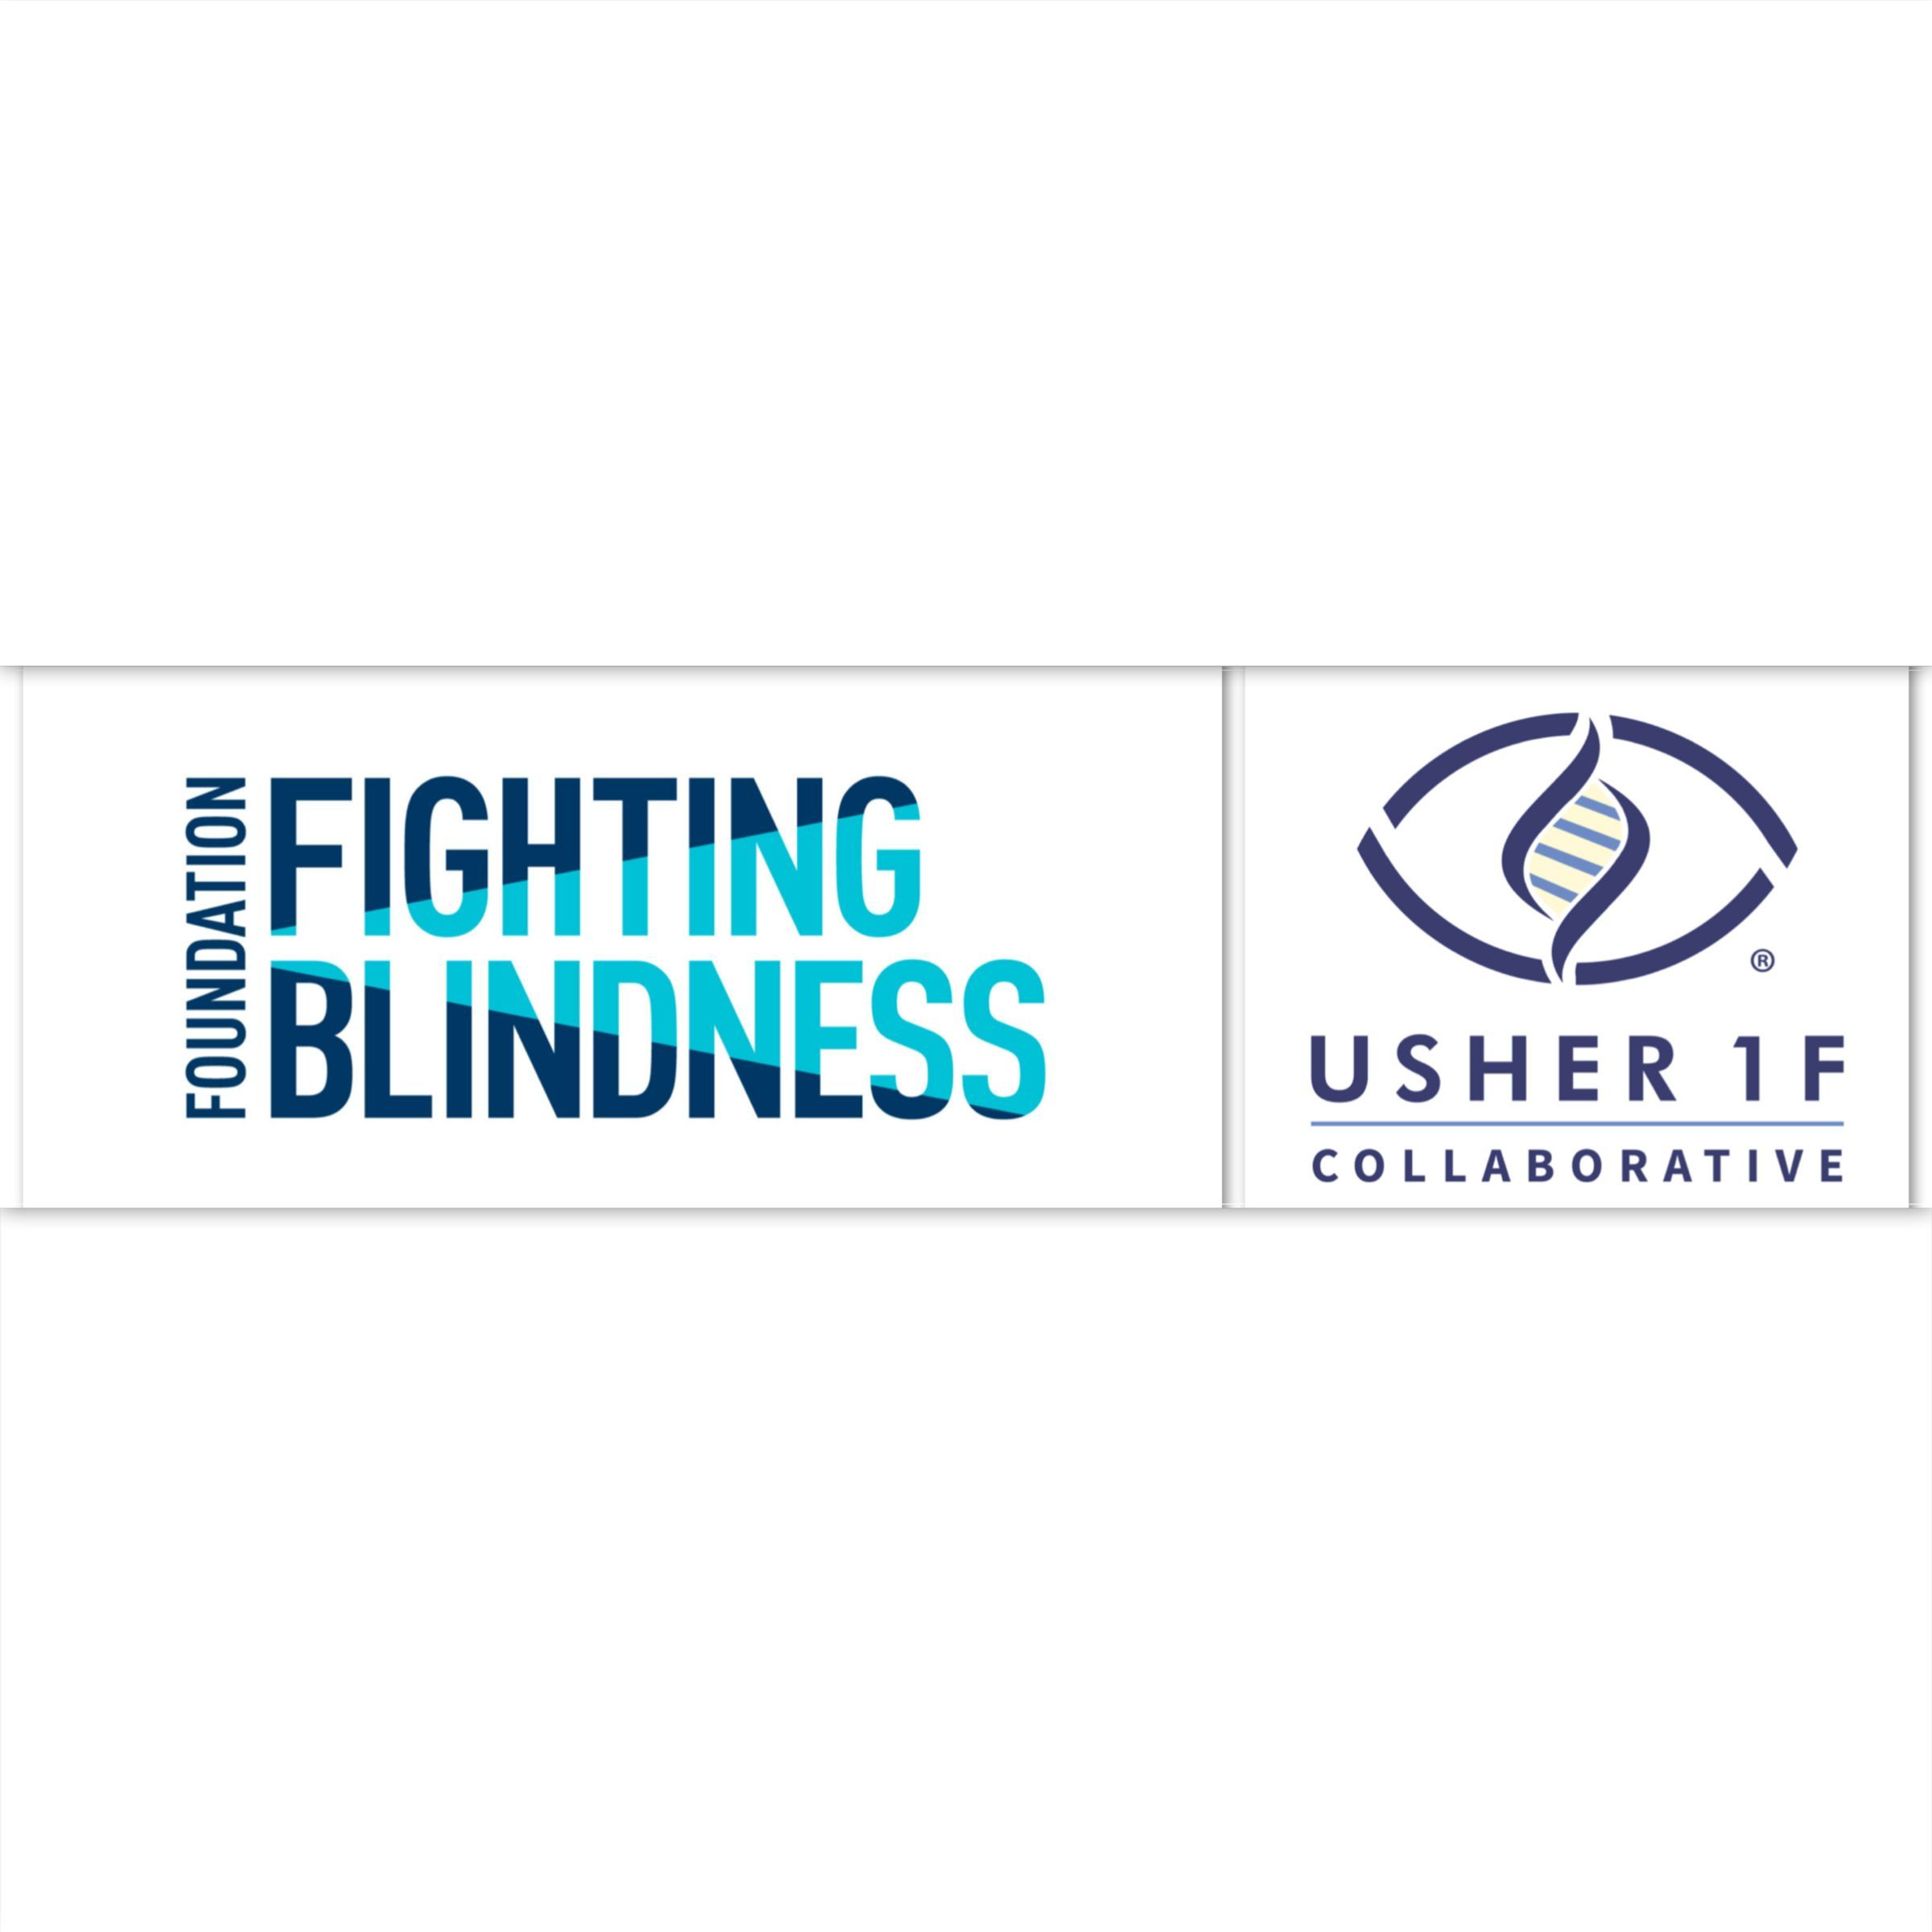 Foundation Fighting Blindness and Usher 1F Collaborative to Launch Natural History Study